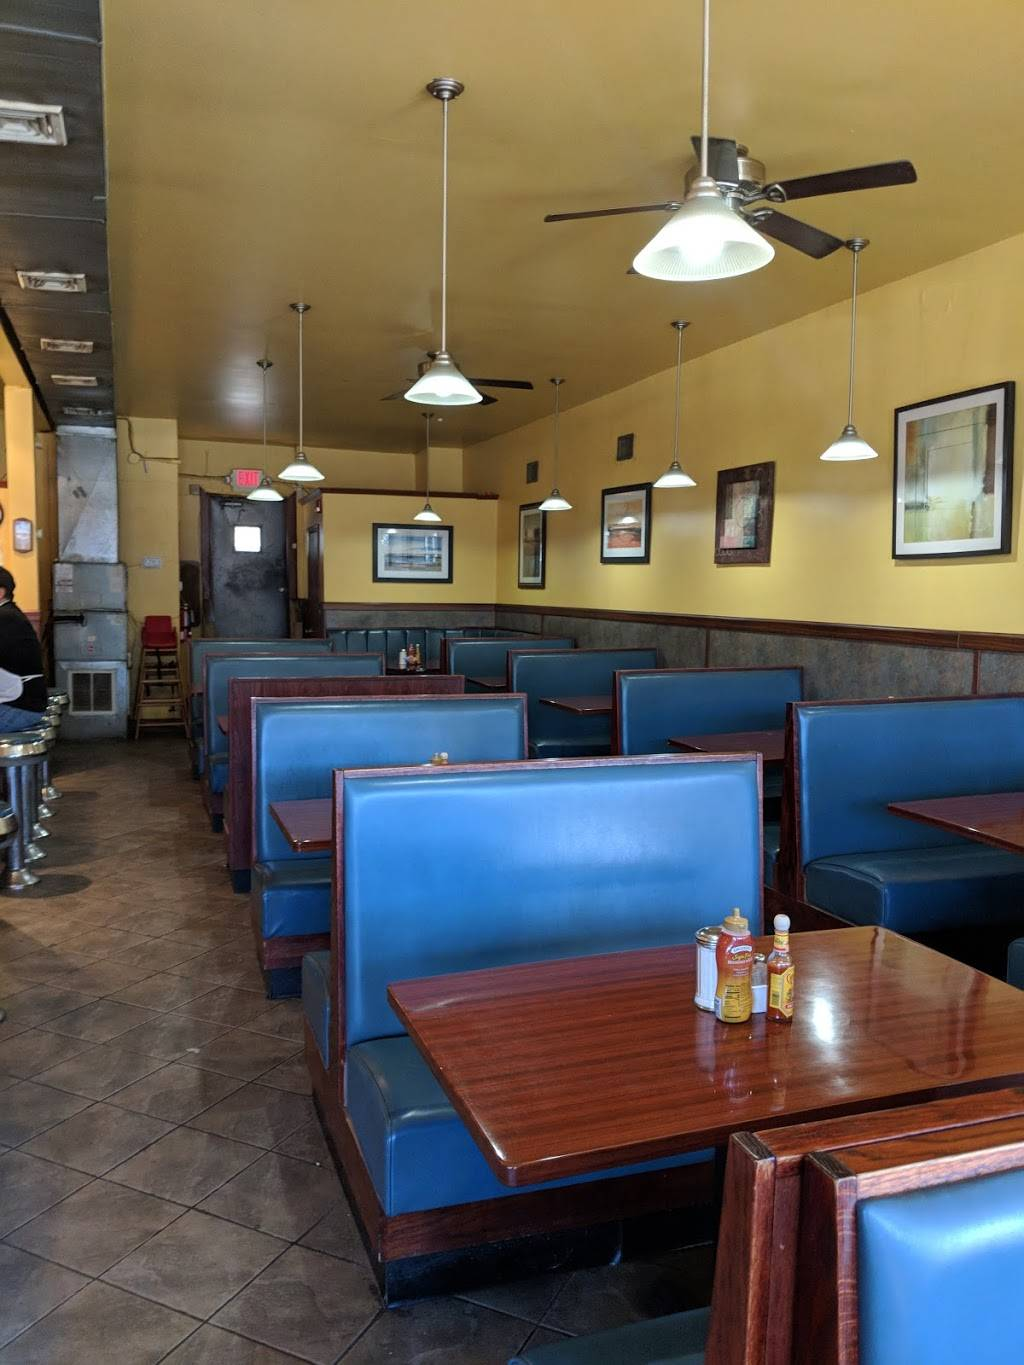 Golden Grill Restaurant | meal takeaway | 1379 Queen Anne Rd, Teaneck, NJ 07666, USA | 2018371078 OR +1 201-837-1078